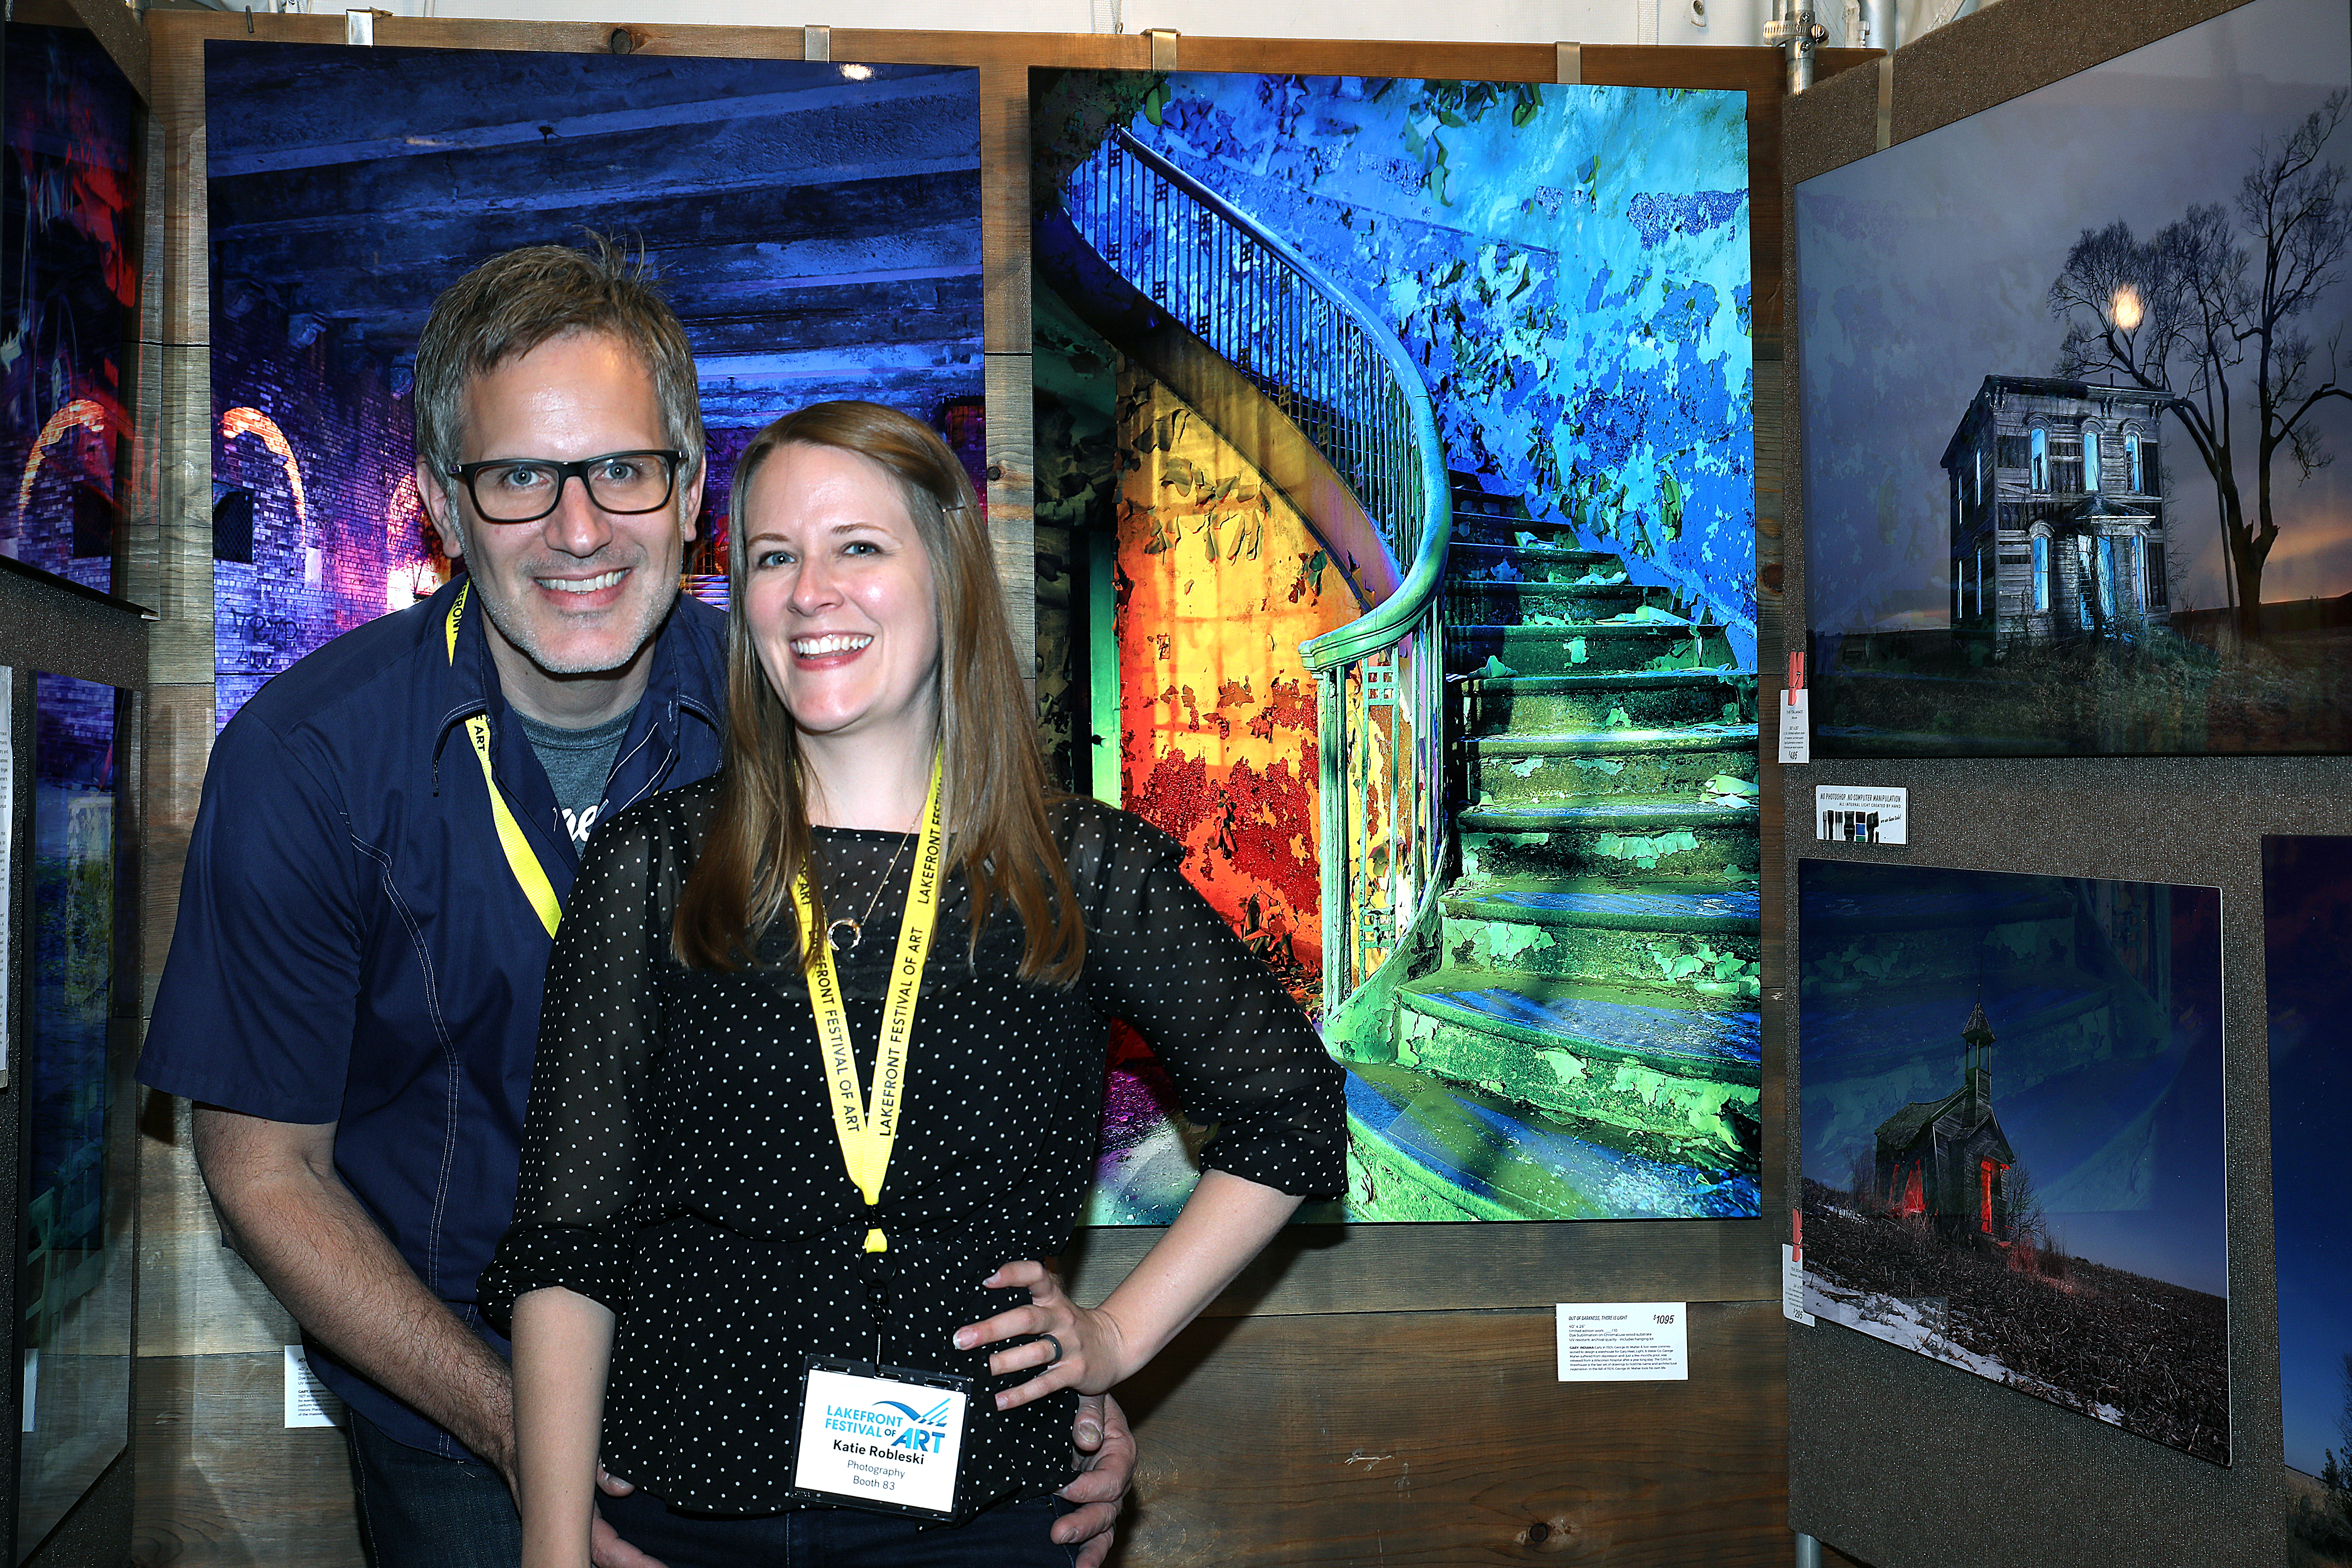 Photographers, Chris and Katie Robleski from Bay View. Photo by Erol Reyal.